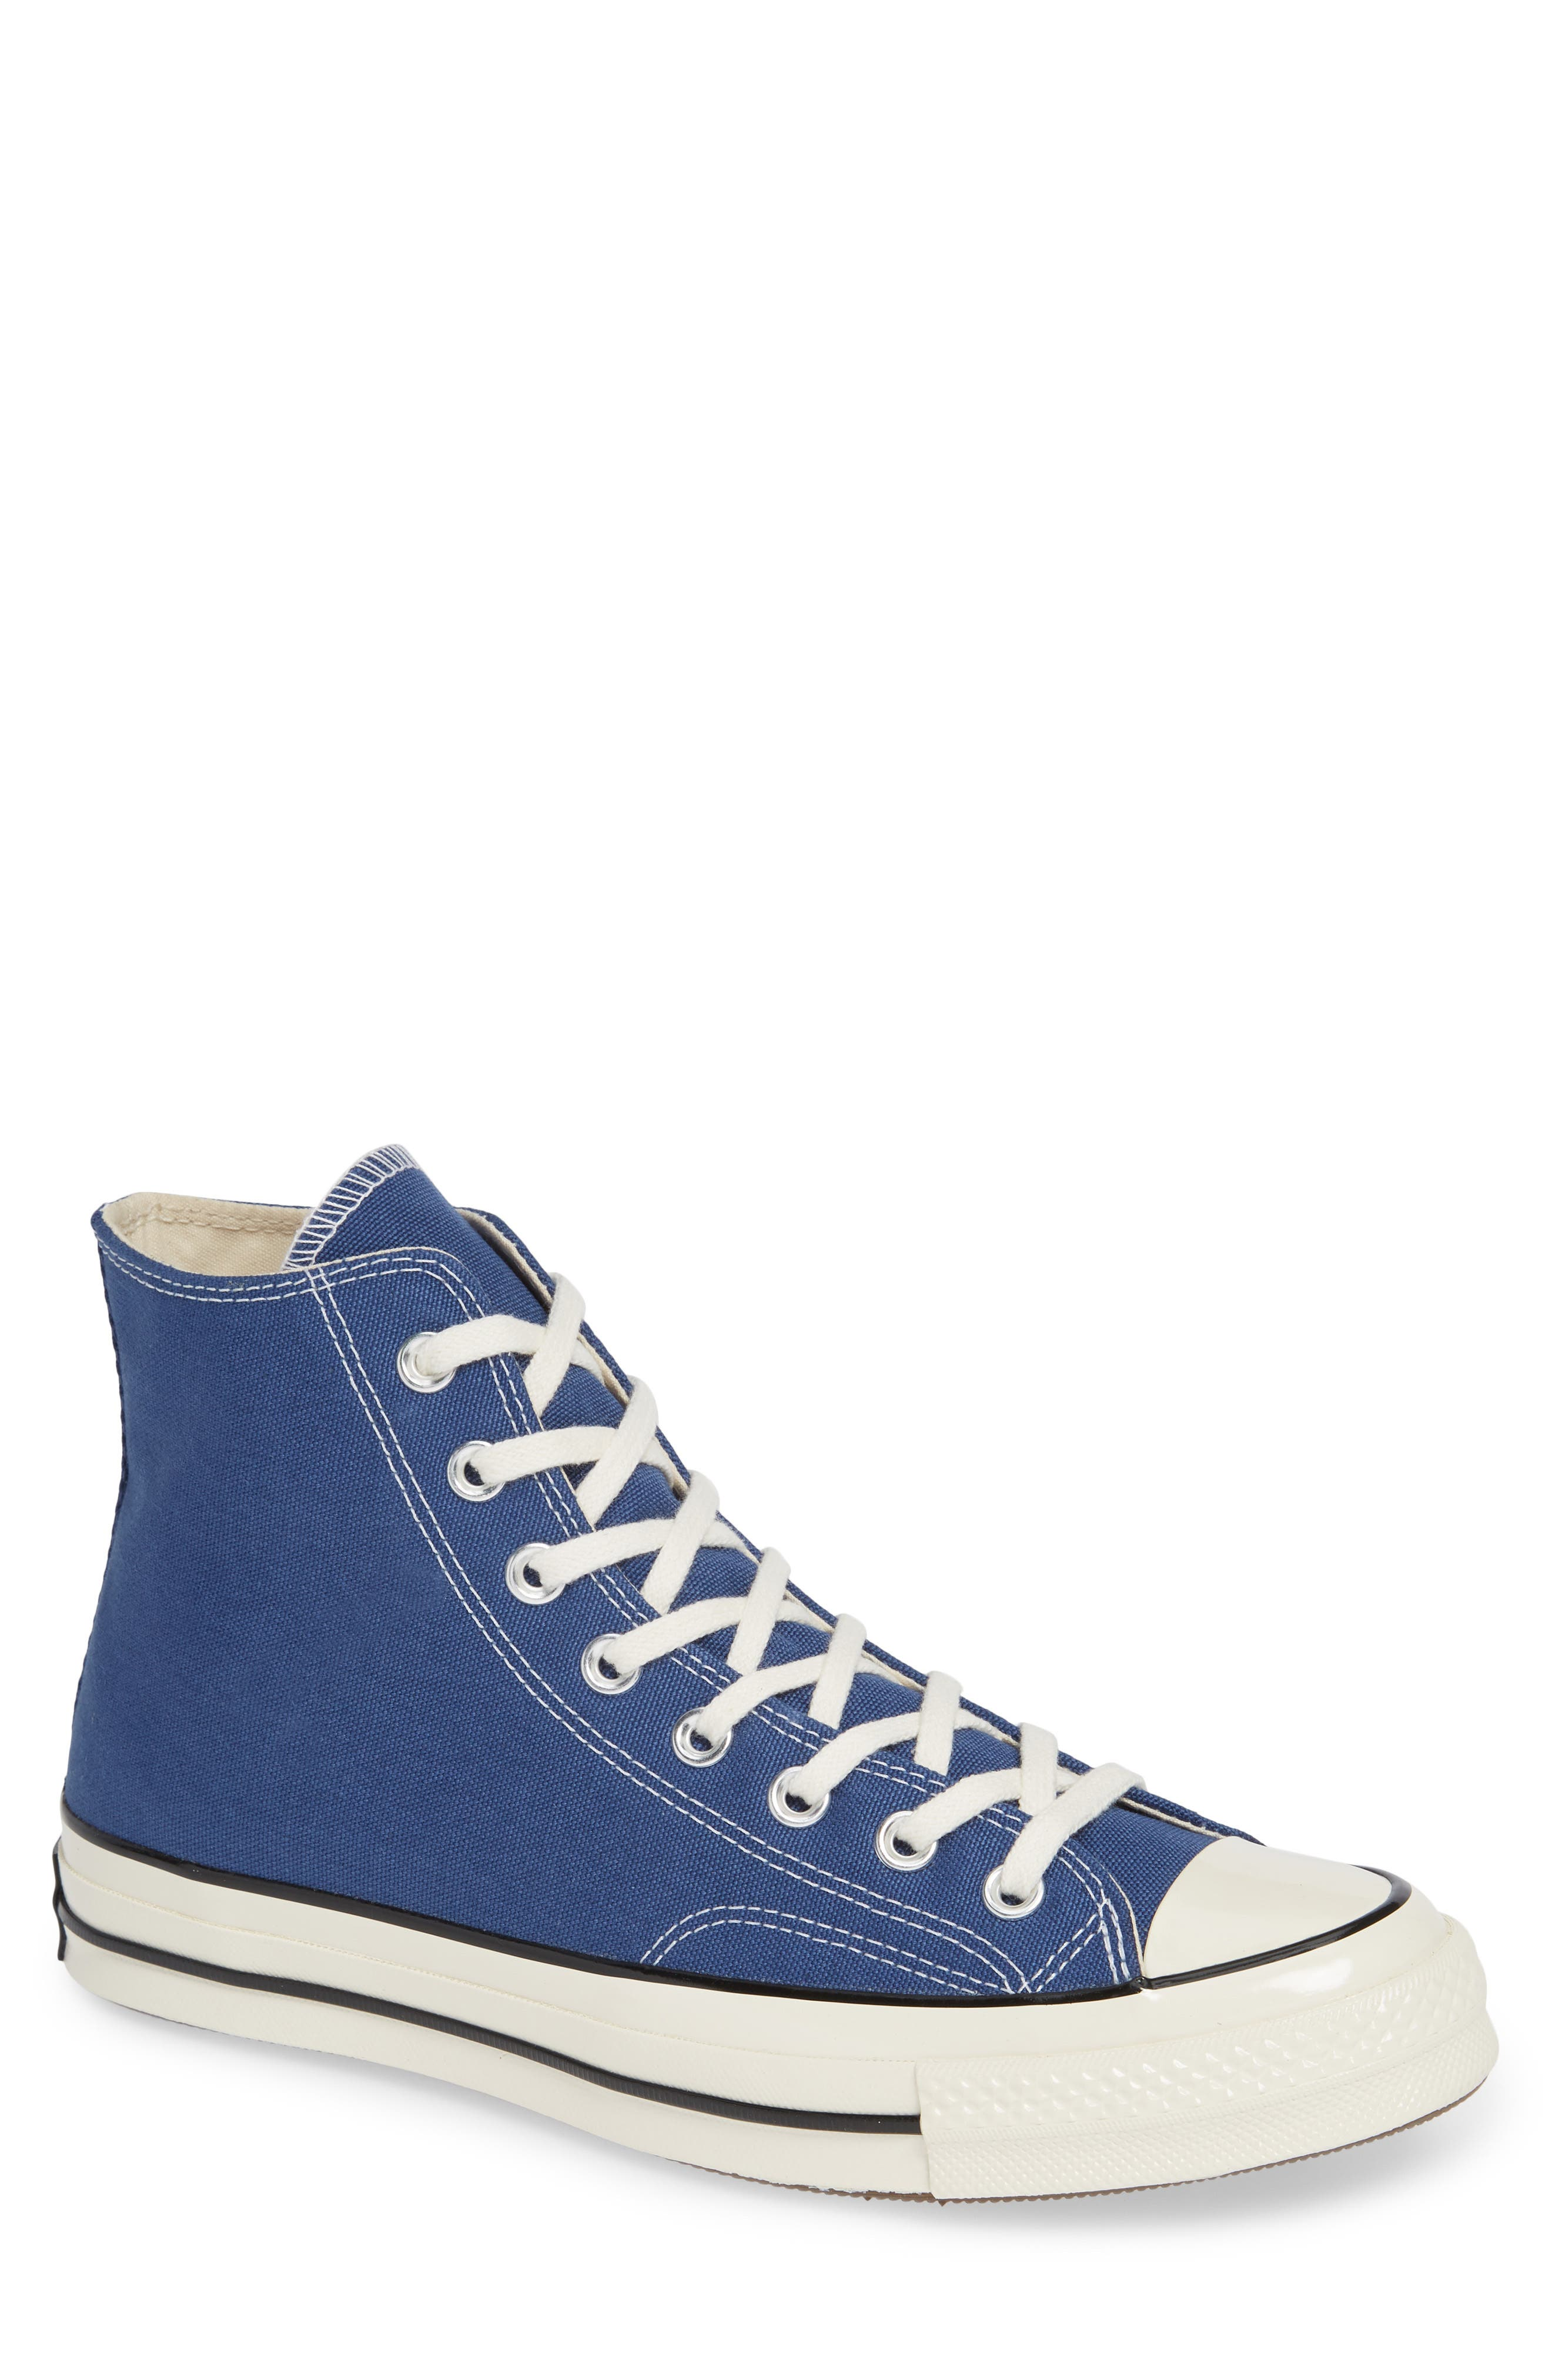 CONVERSE Chuck Taylor<sup>®</sup> All Star<sup>®</sup> 70 Vintage High Top Sneaker, Main, color, TRUE NAVY/ BLACK